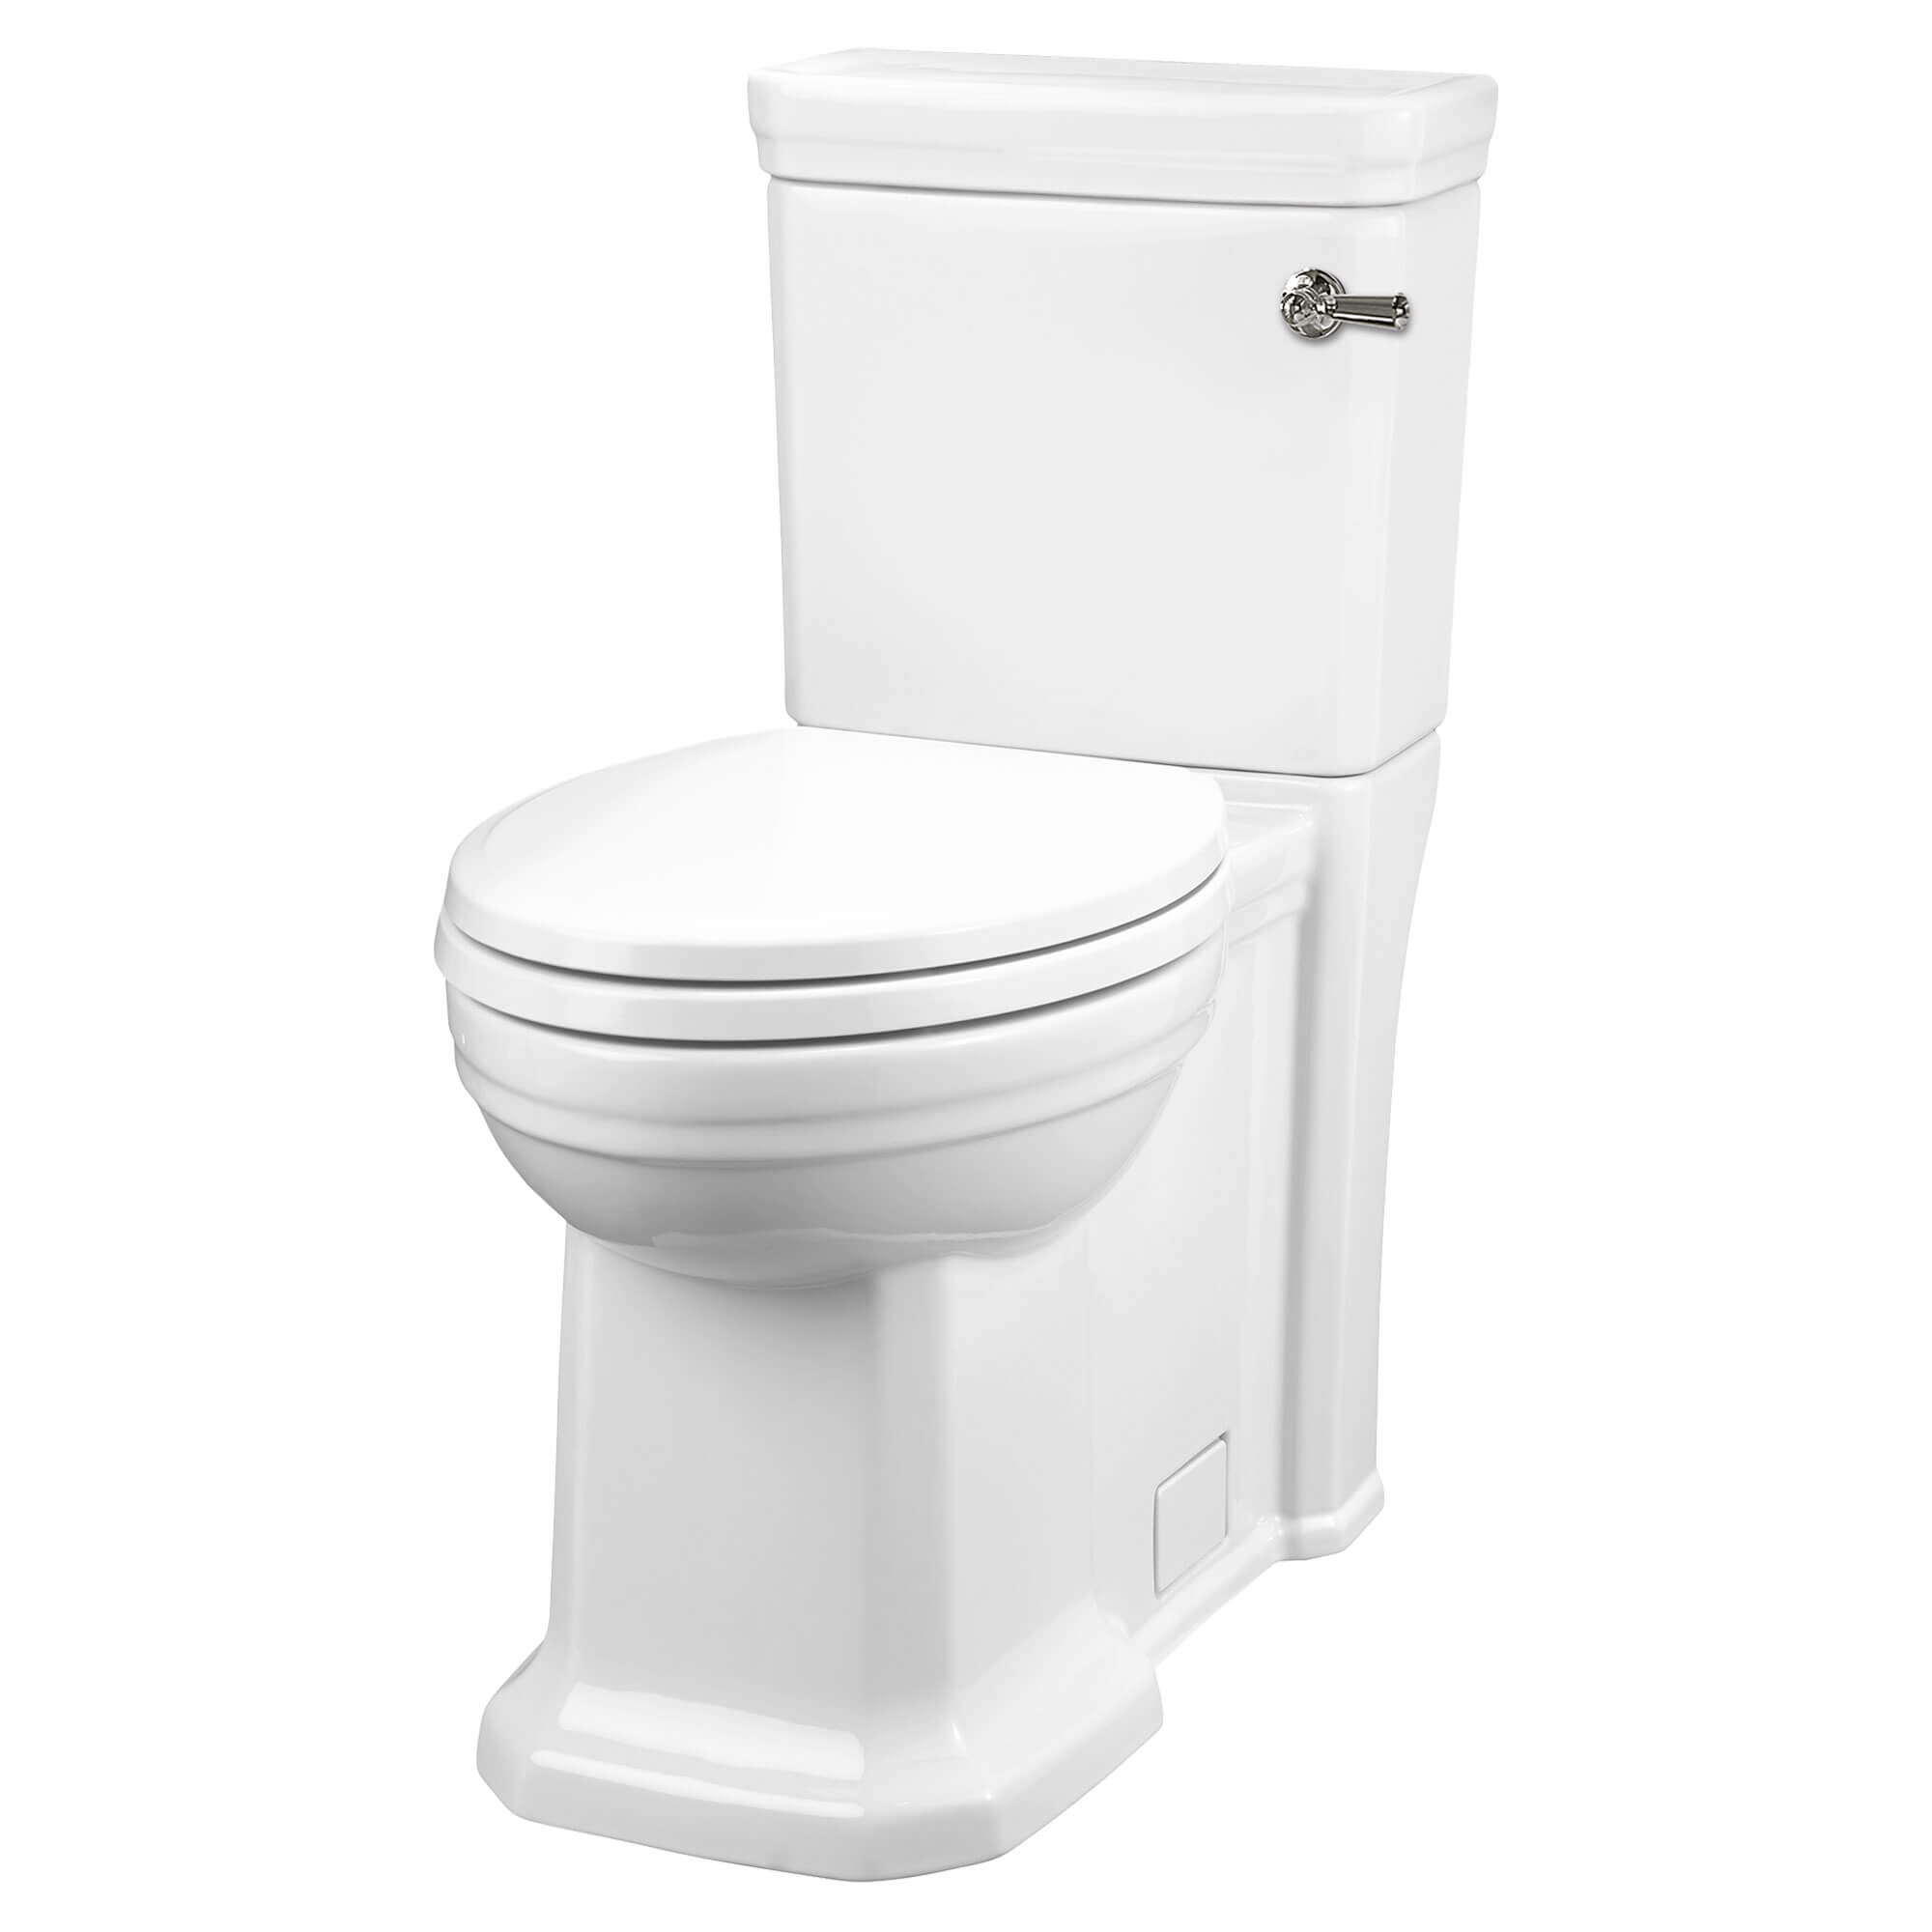 Fitzgerald Two-Piece Elongated Toilet with Right-Hand Trip Lever - Projects Model